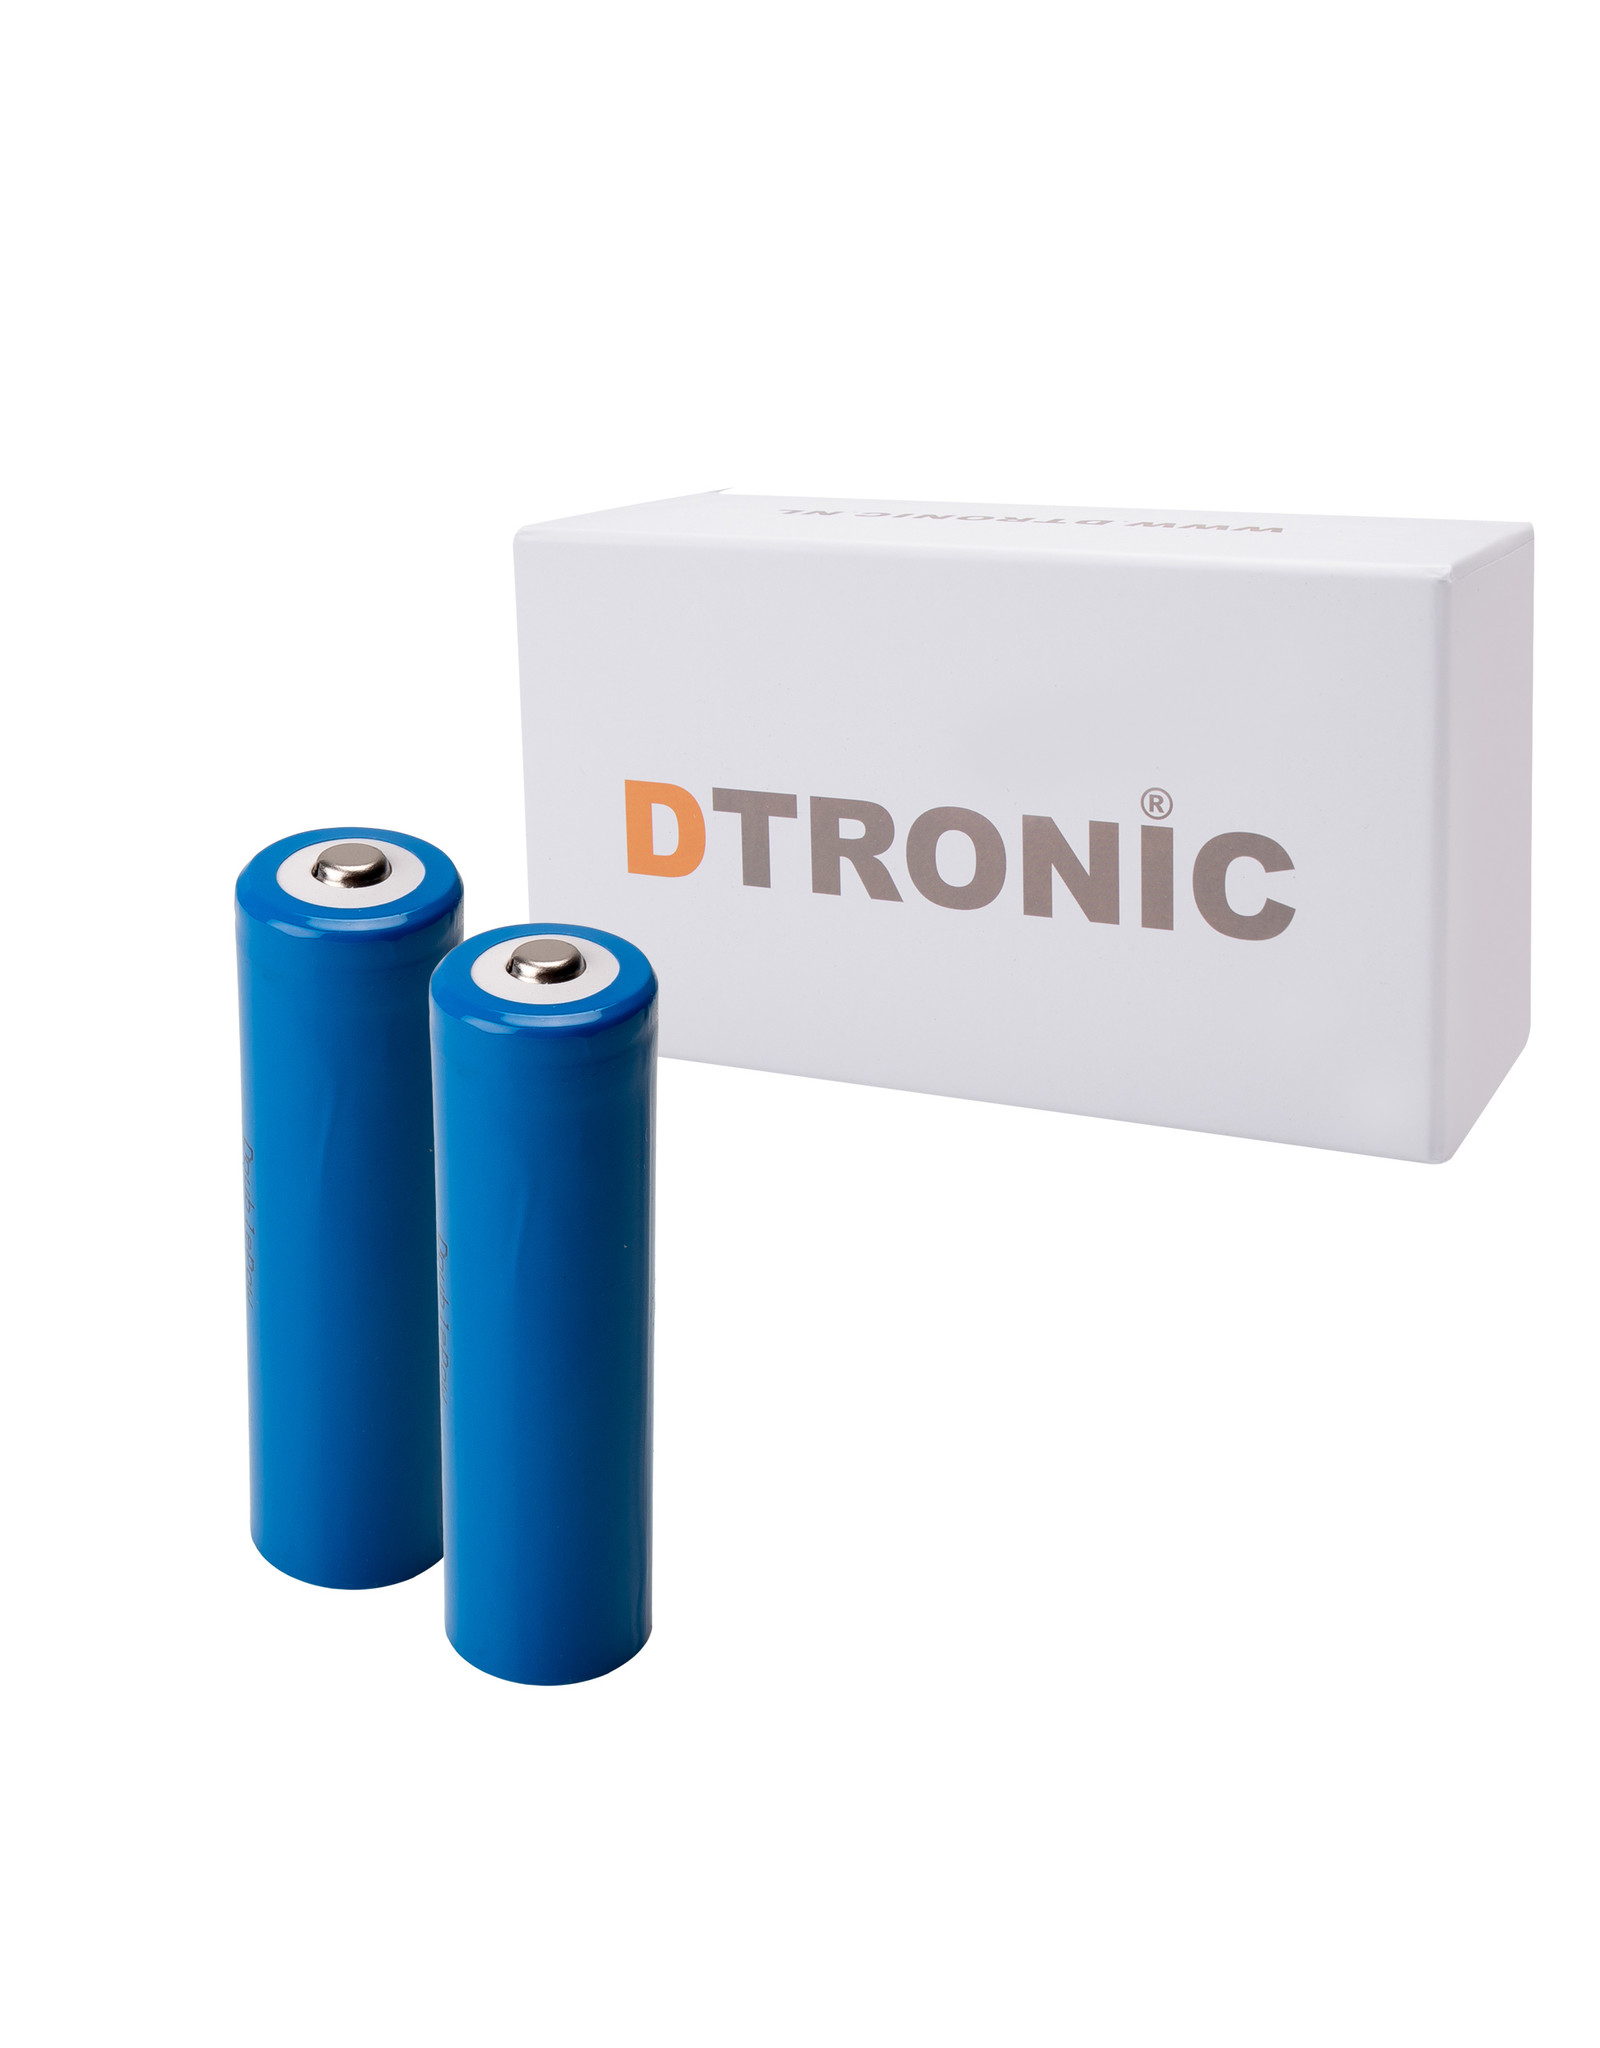 DTRONIC DTRONIC - A2